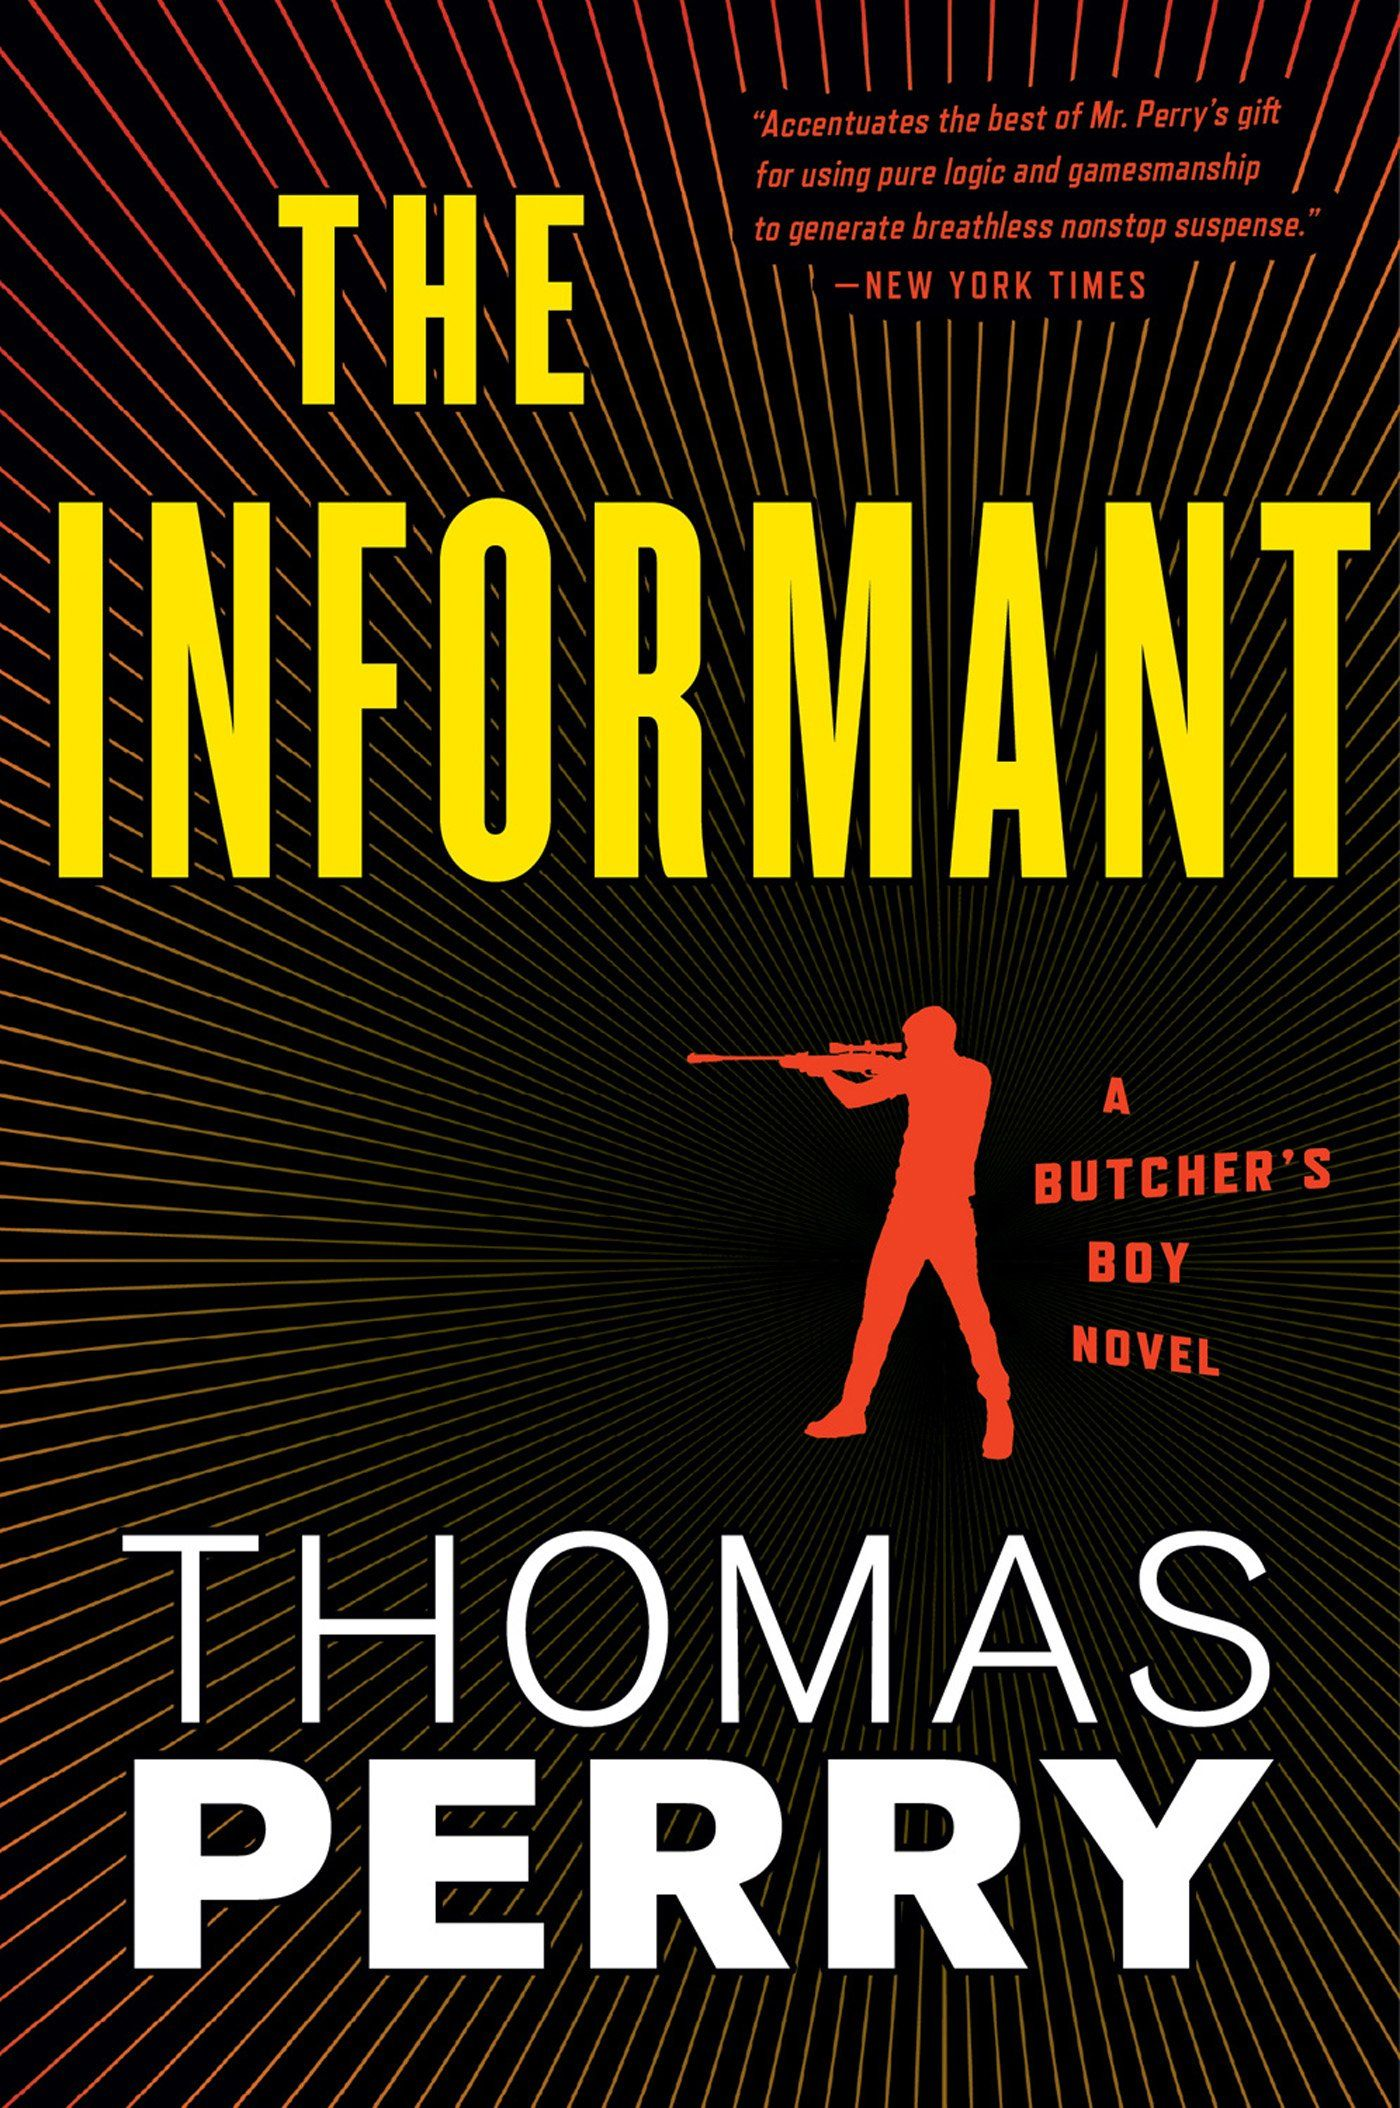 The Informant: An Otto Penzler Book (Butcher's Boy 3) - Kindle edition by Thomas Perry. Mystery, Thriller & Suspense Kindle eBooks @ Amazon.com.